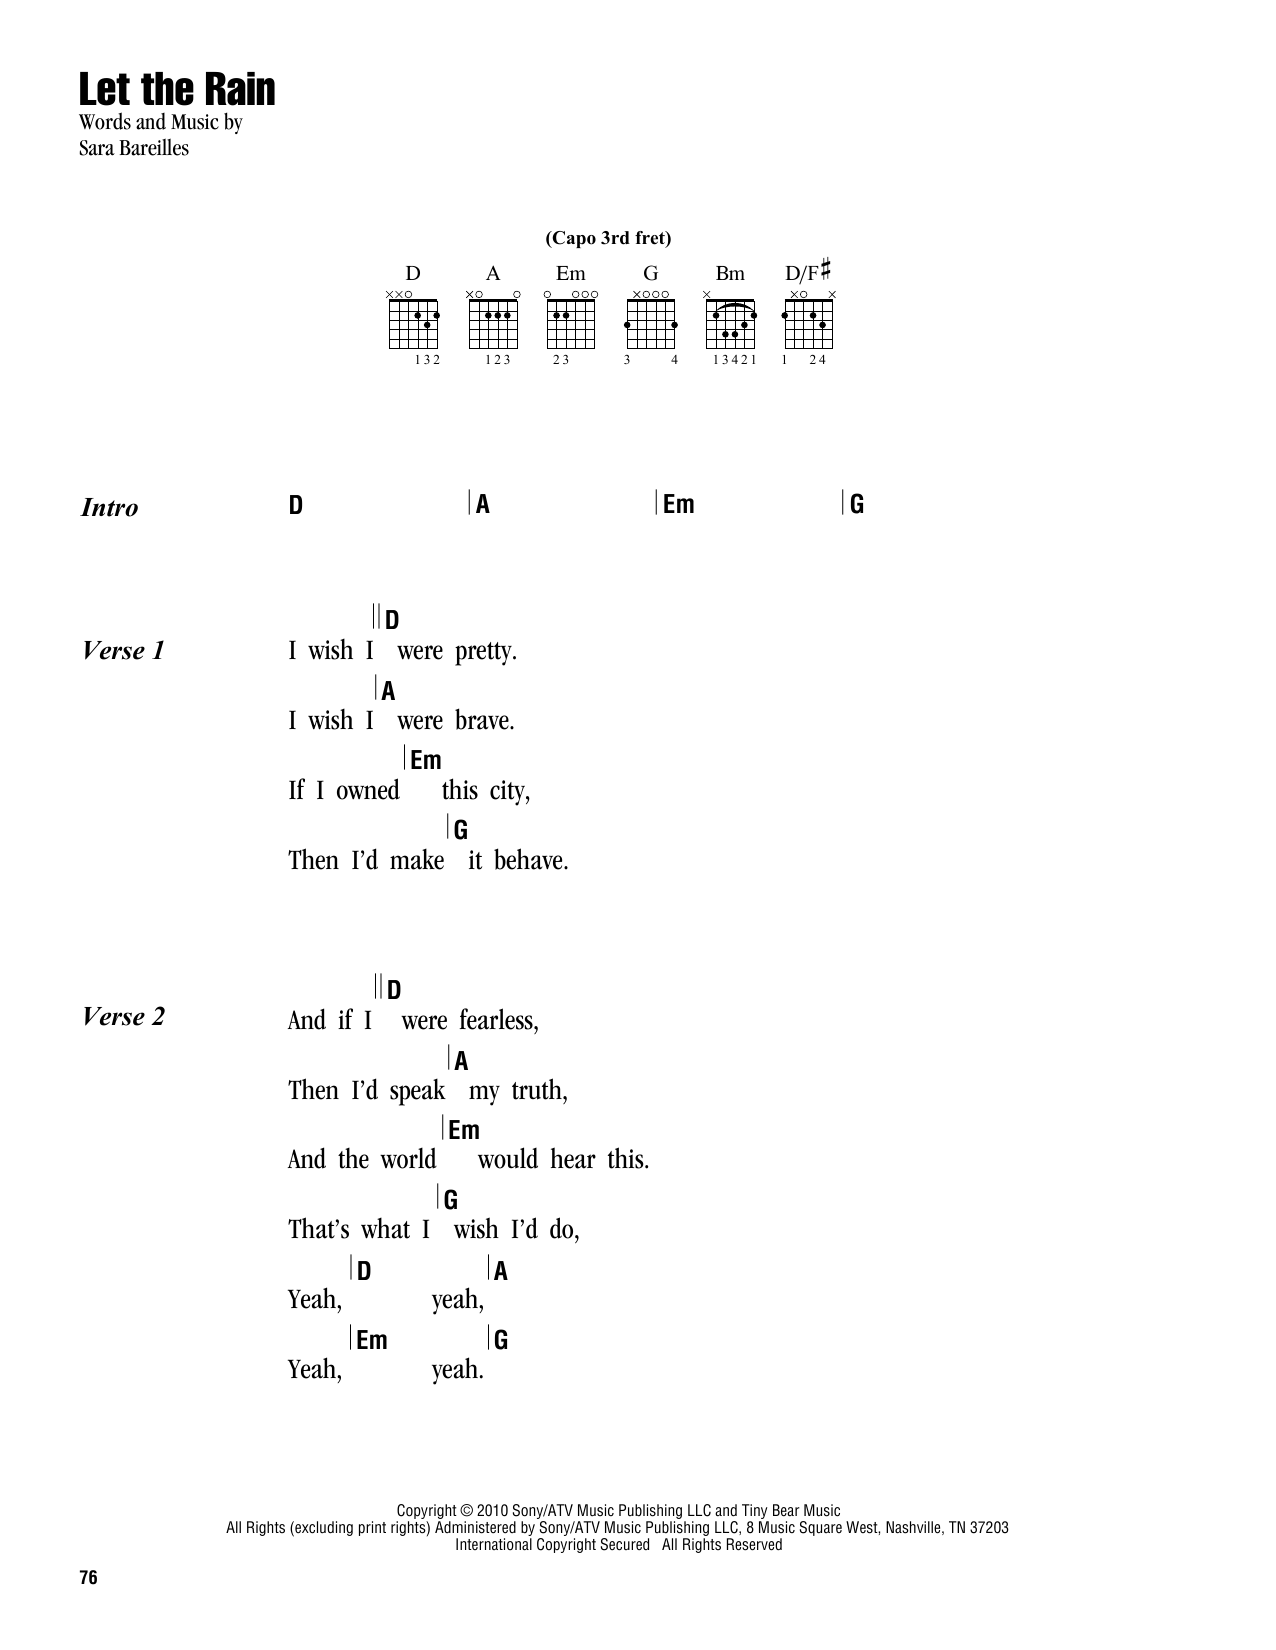 Let the rain sheet music by sara bareilles lyrics chords 163042 let the rain sheet music hexwebz Images